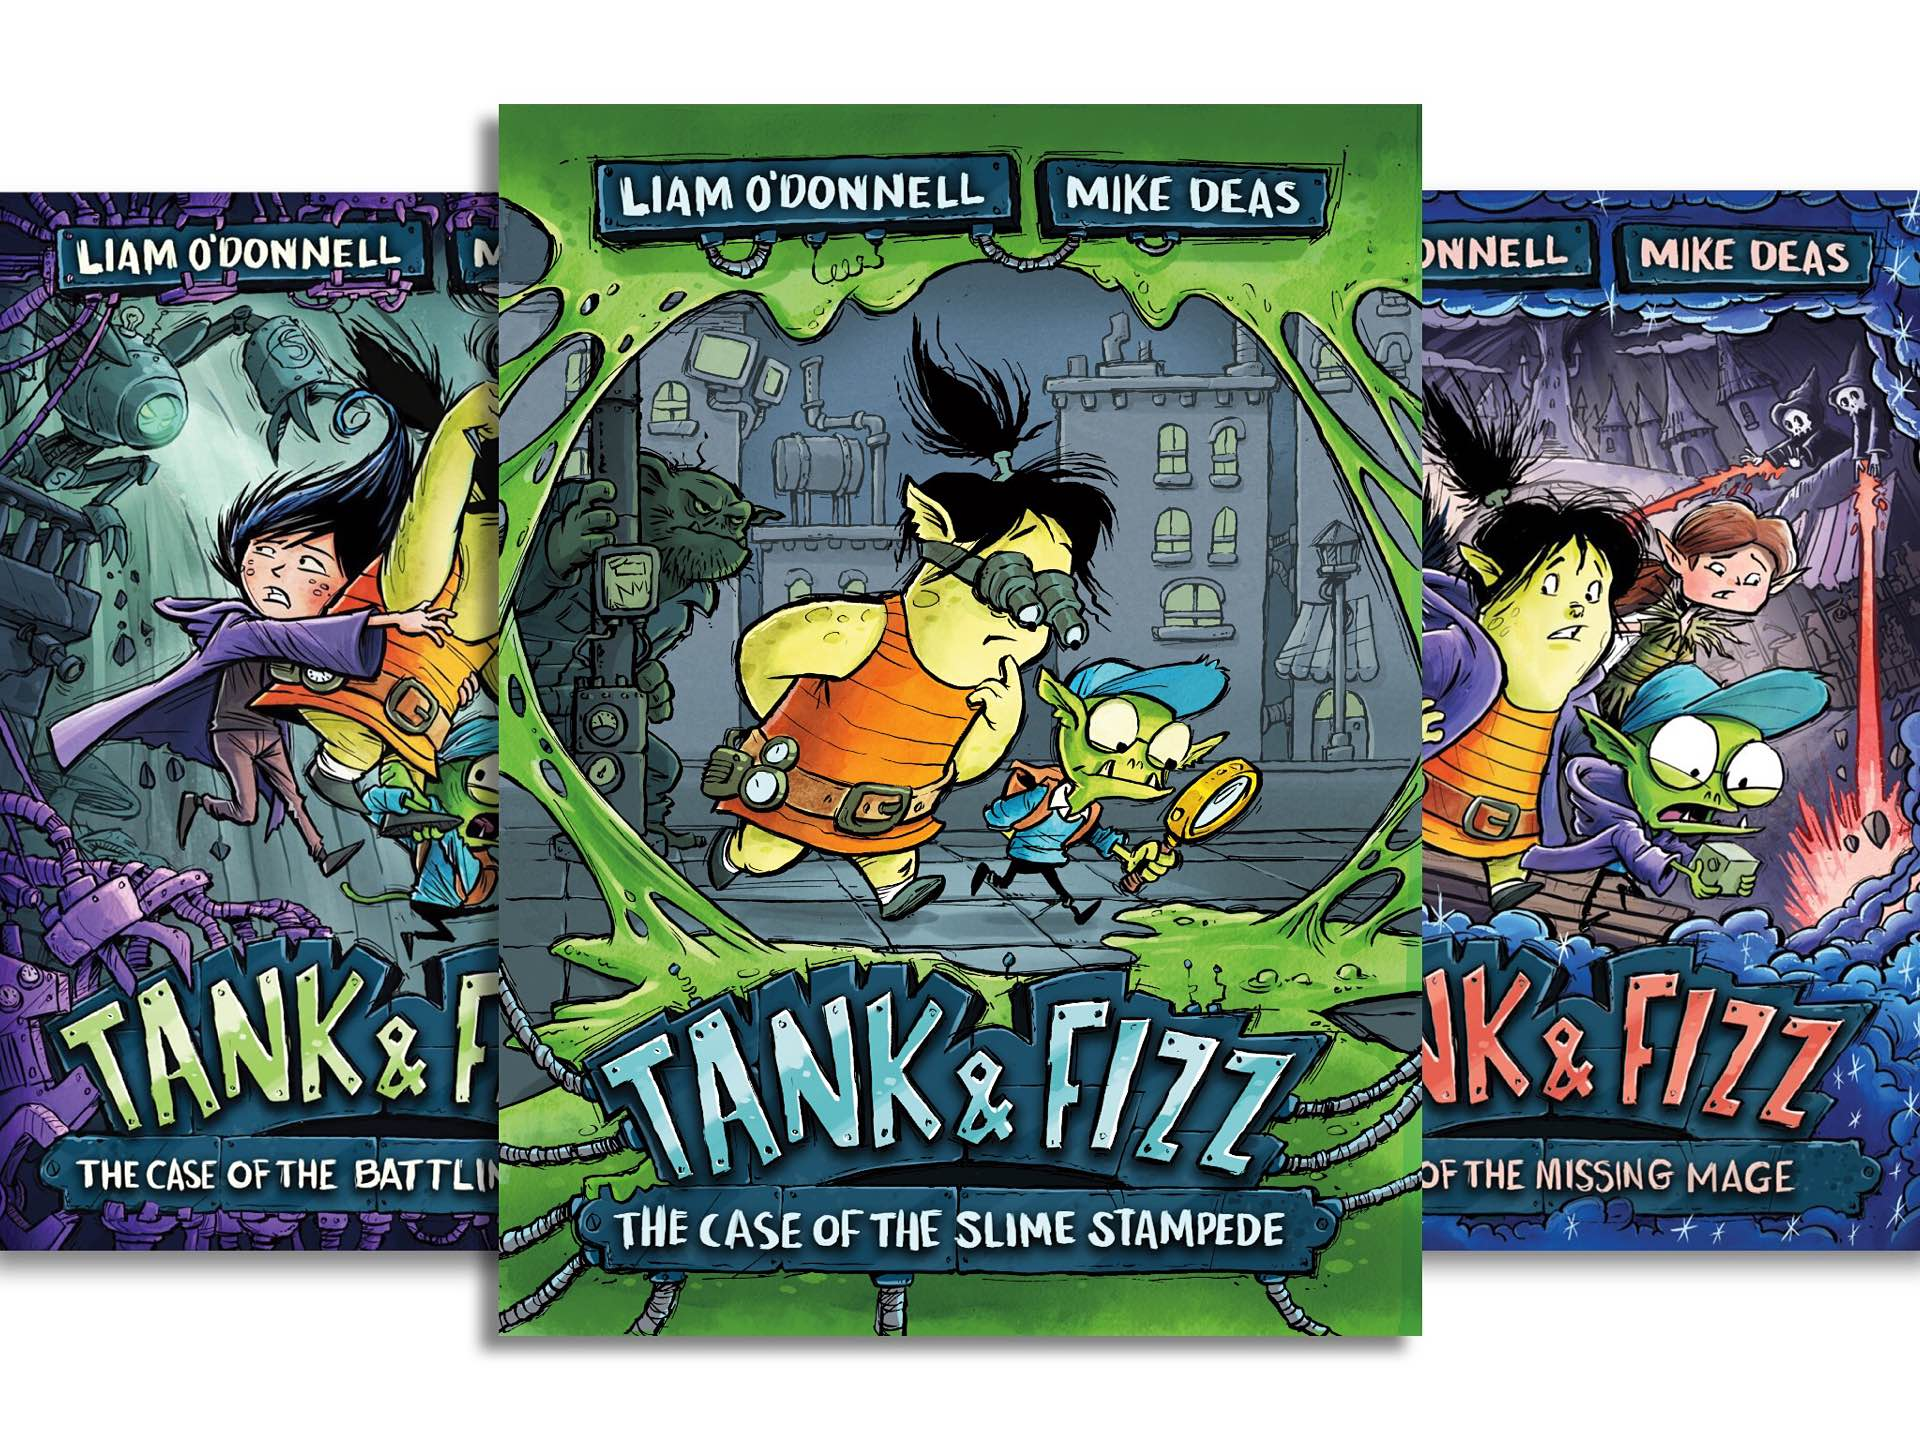 tank-and-fizz-childrens-book-series